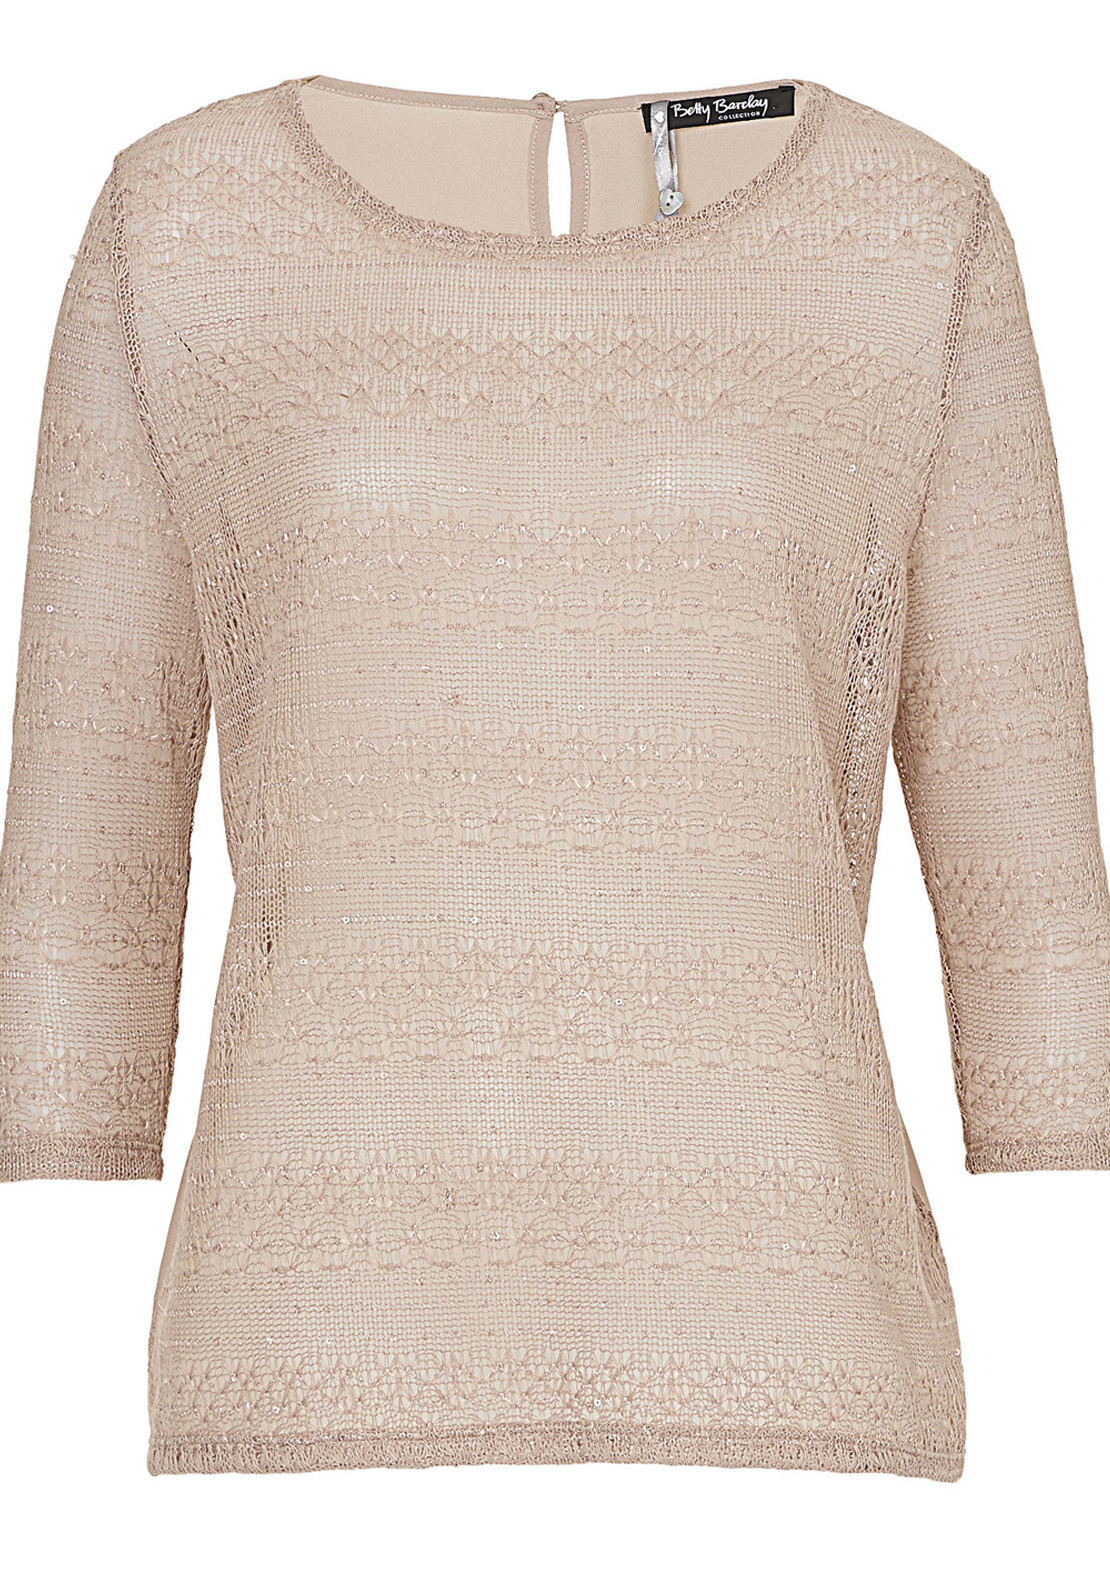 Betty Barclay Semi Sheer Cobweb Knit Top, Beige